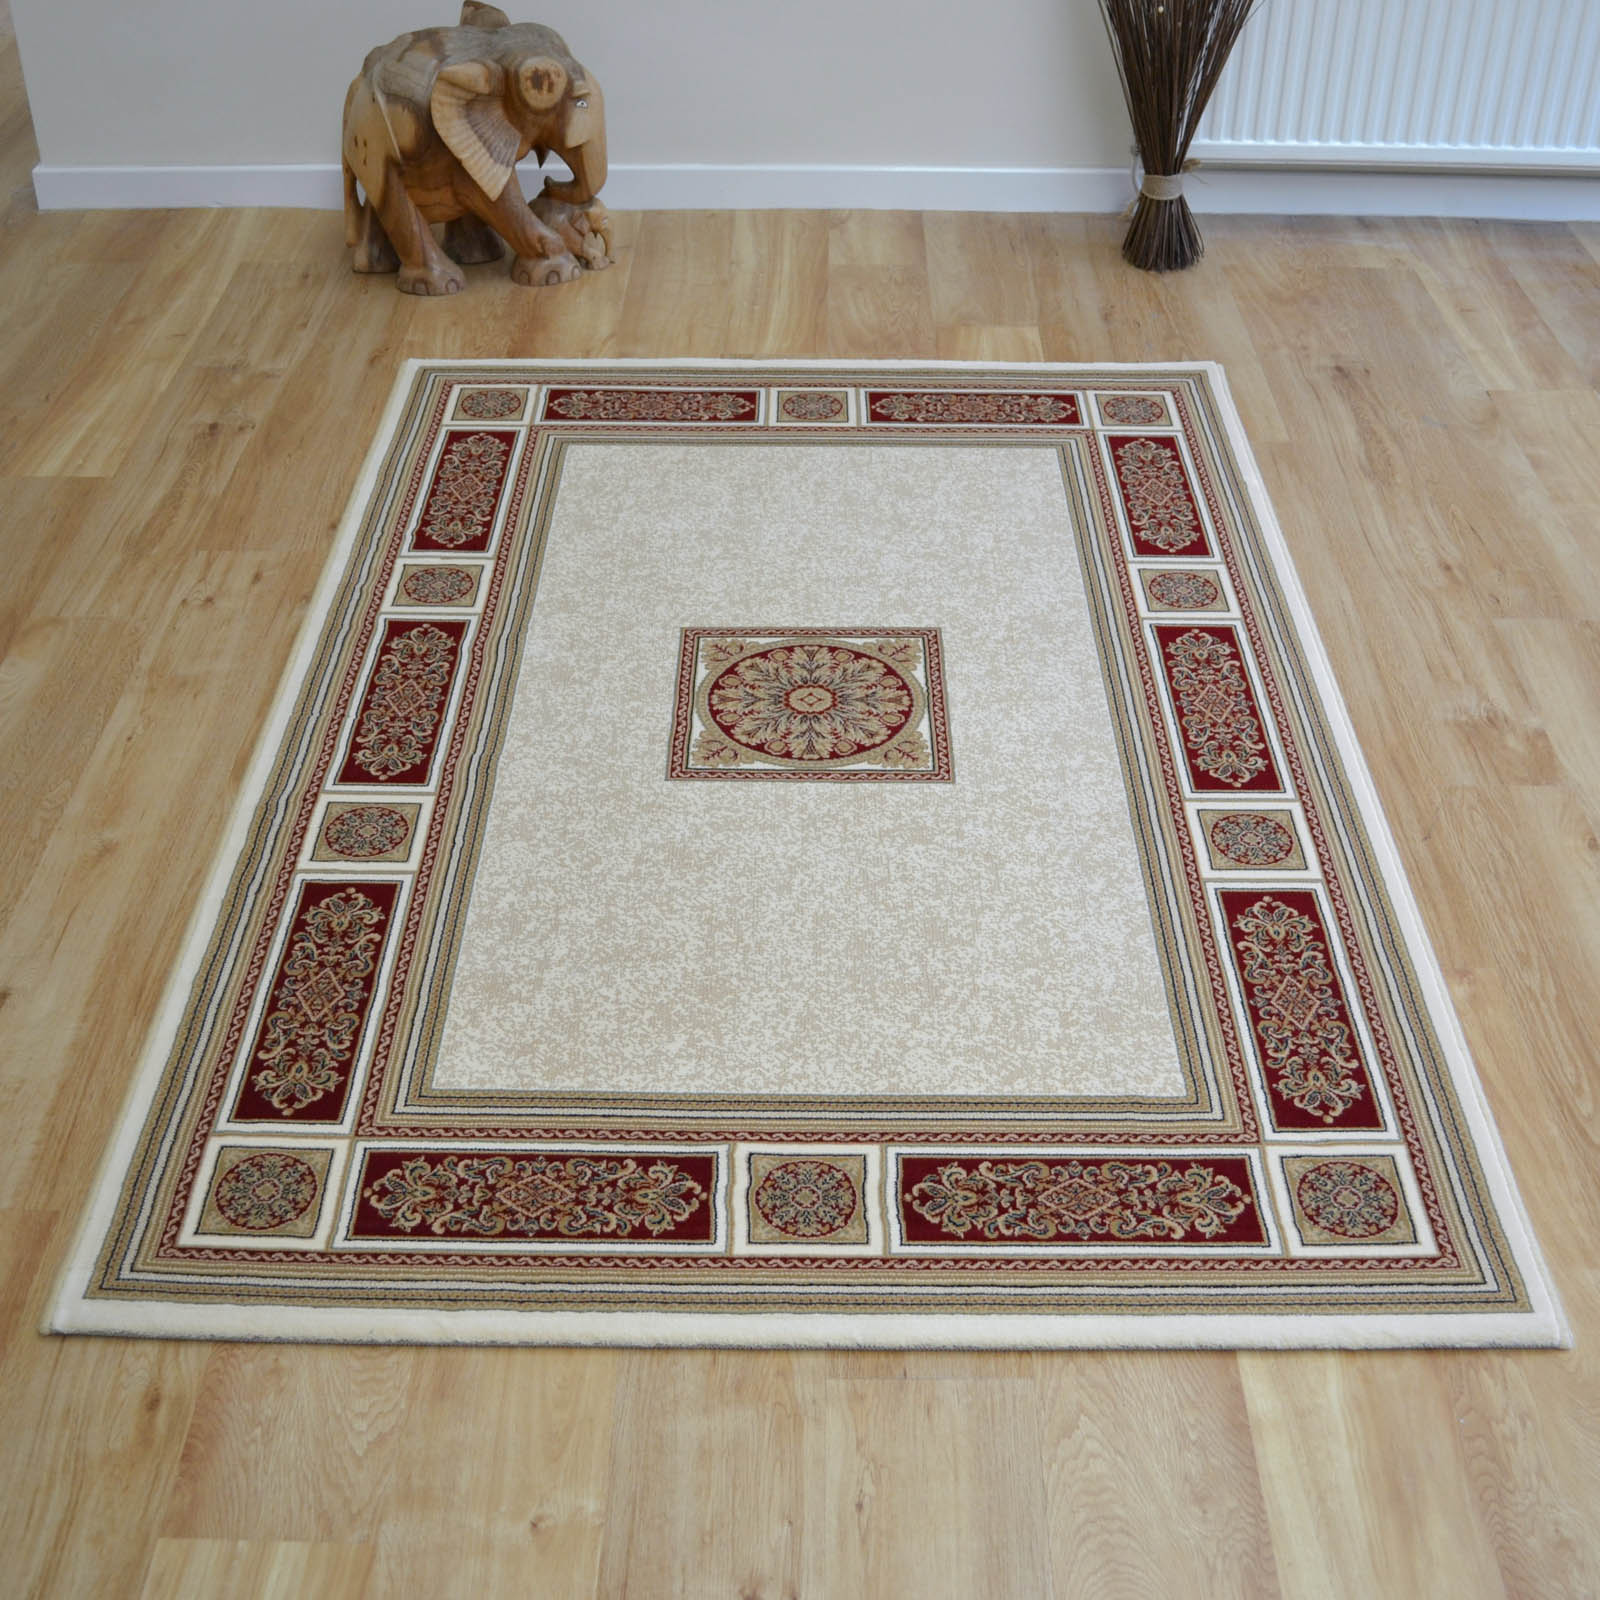 Da Vinci Rugs 57801 6414 in Cream and Red